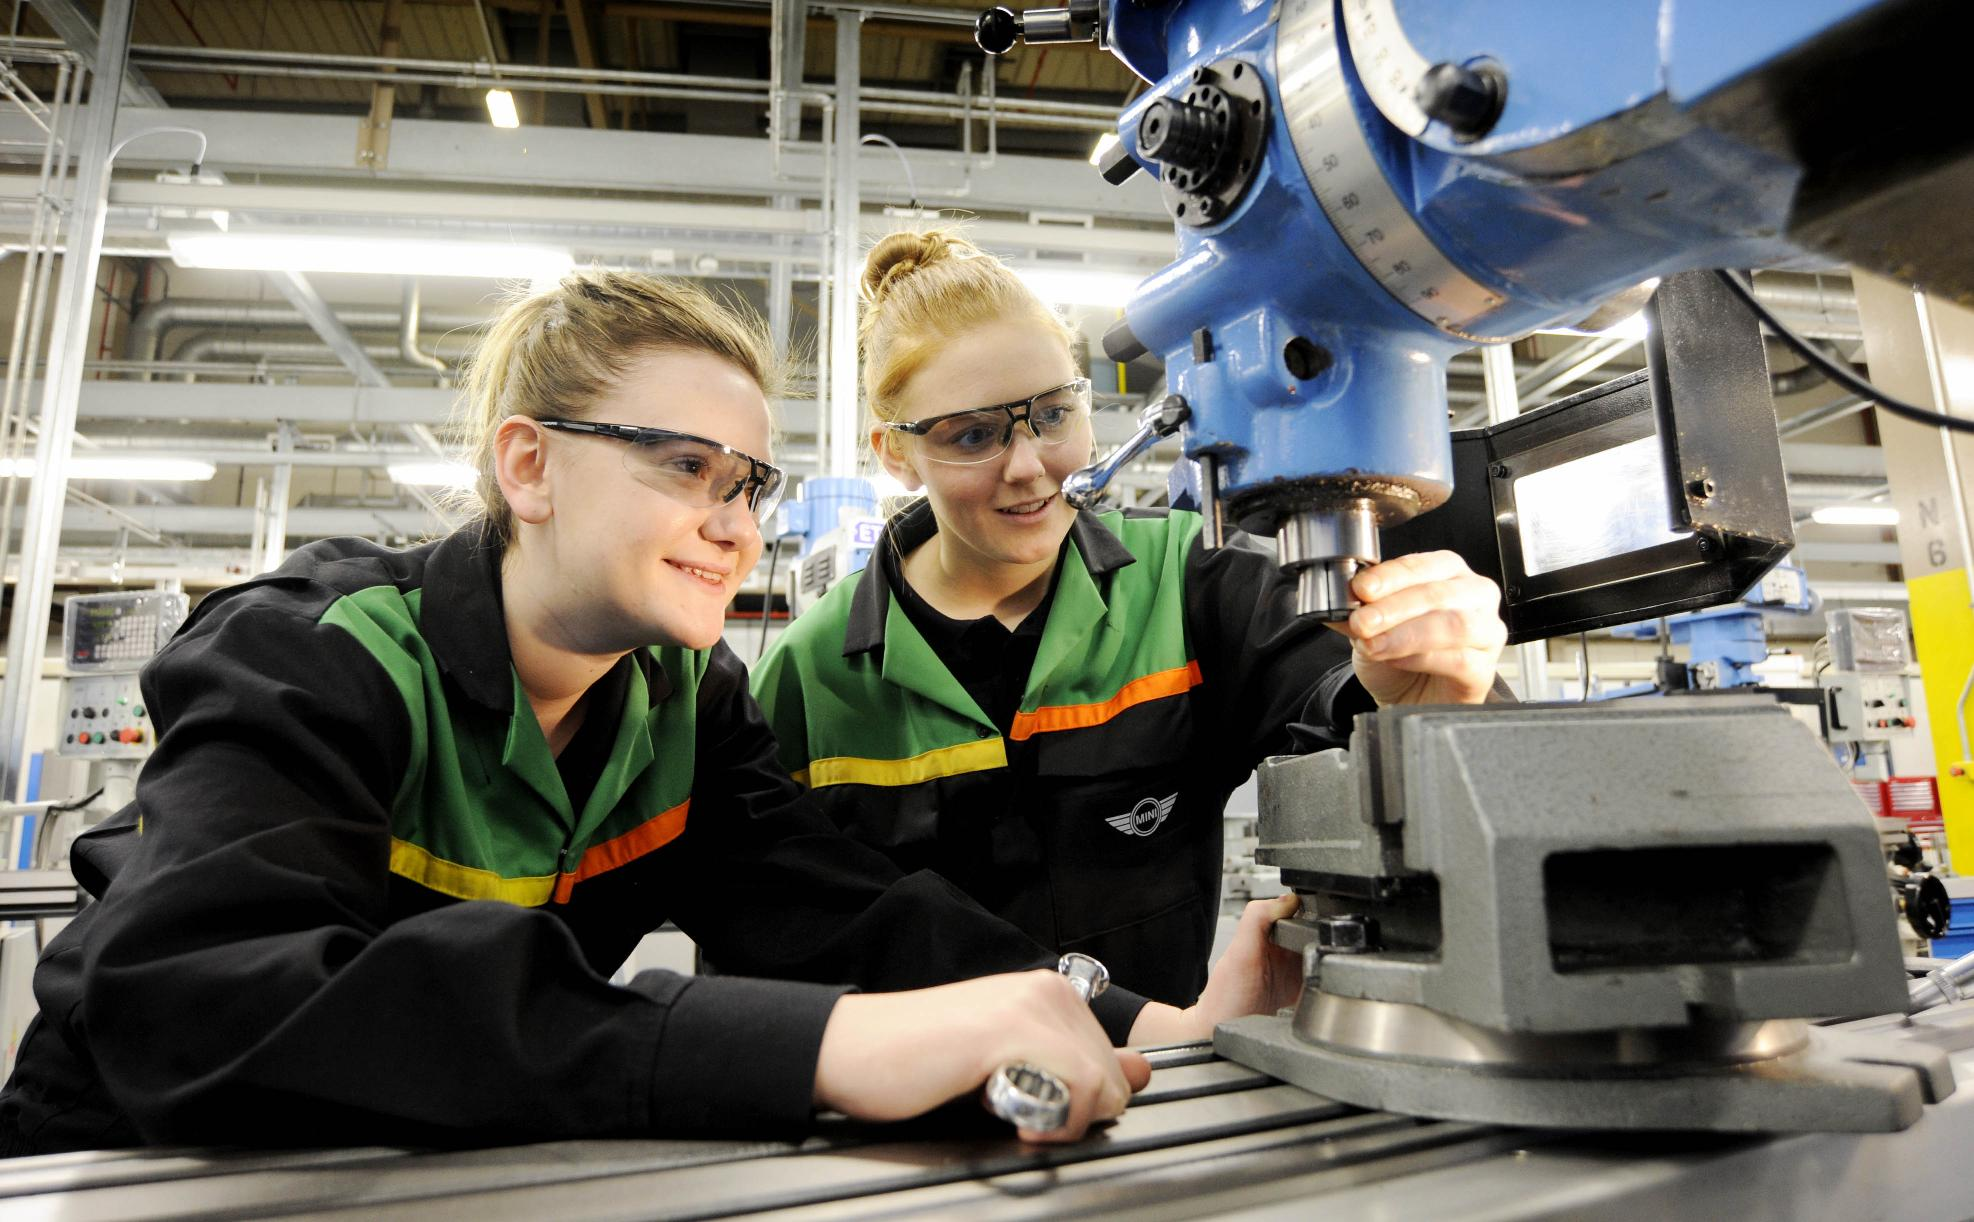 Apprenticeship Programme 2018 At Union Motors